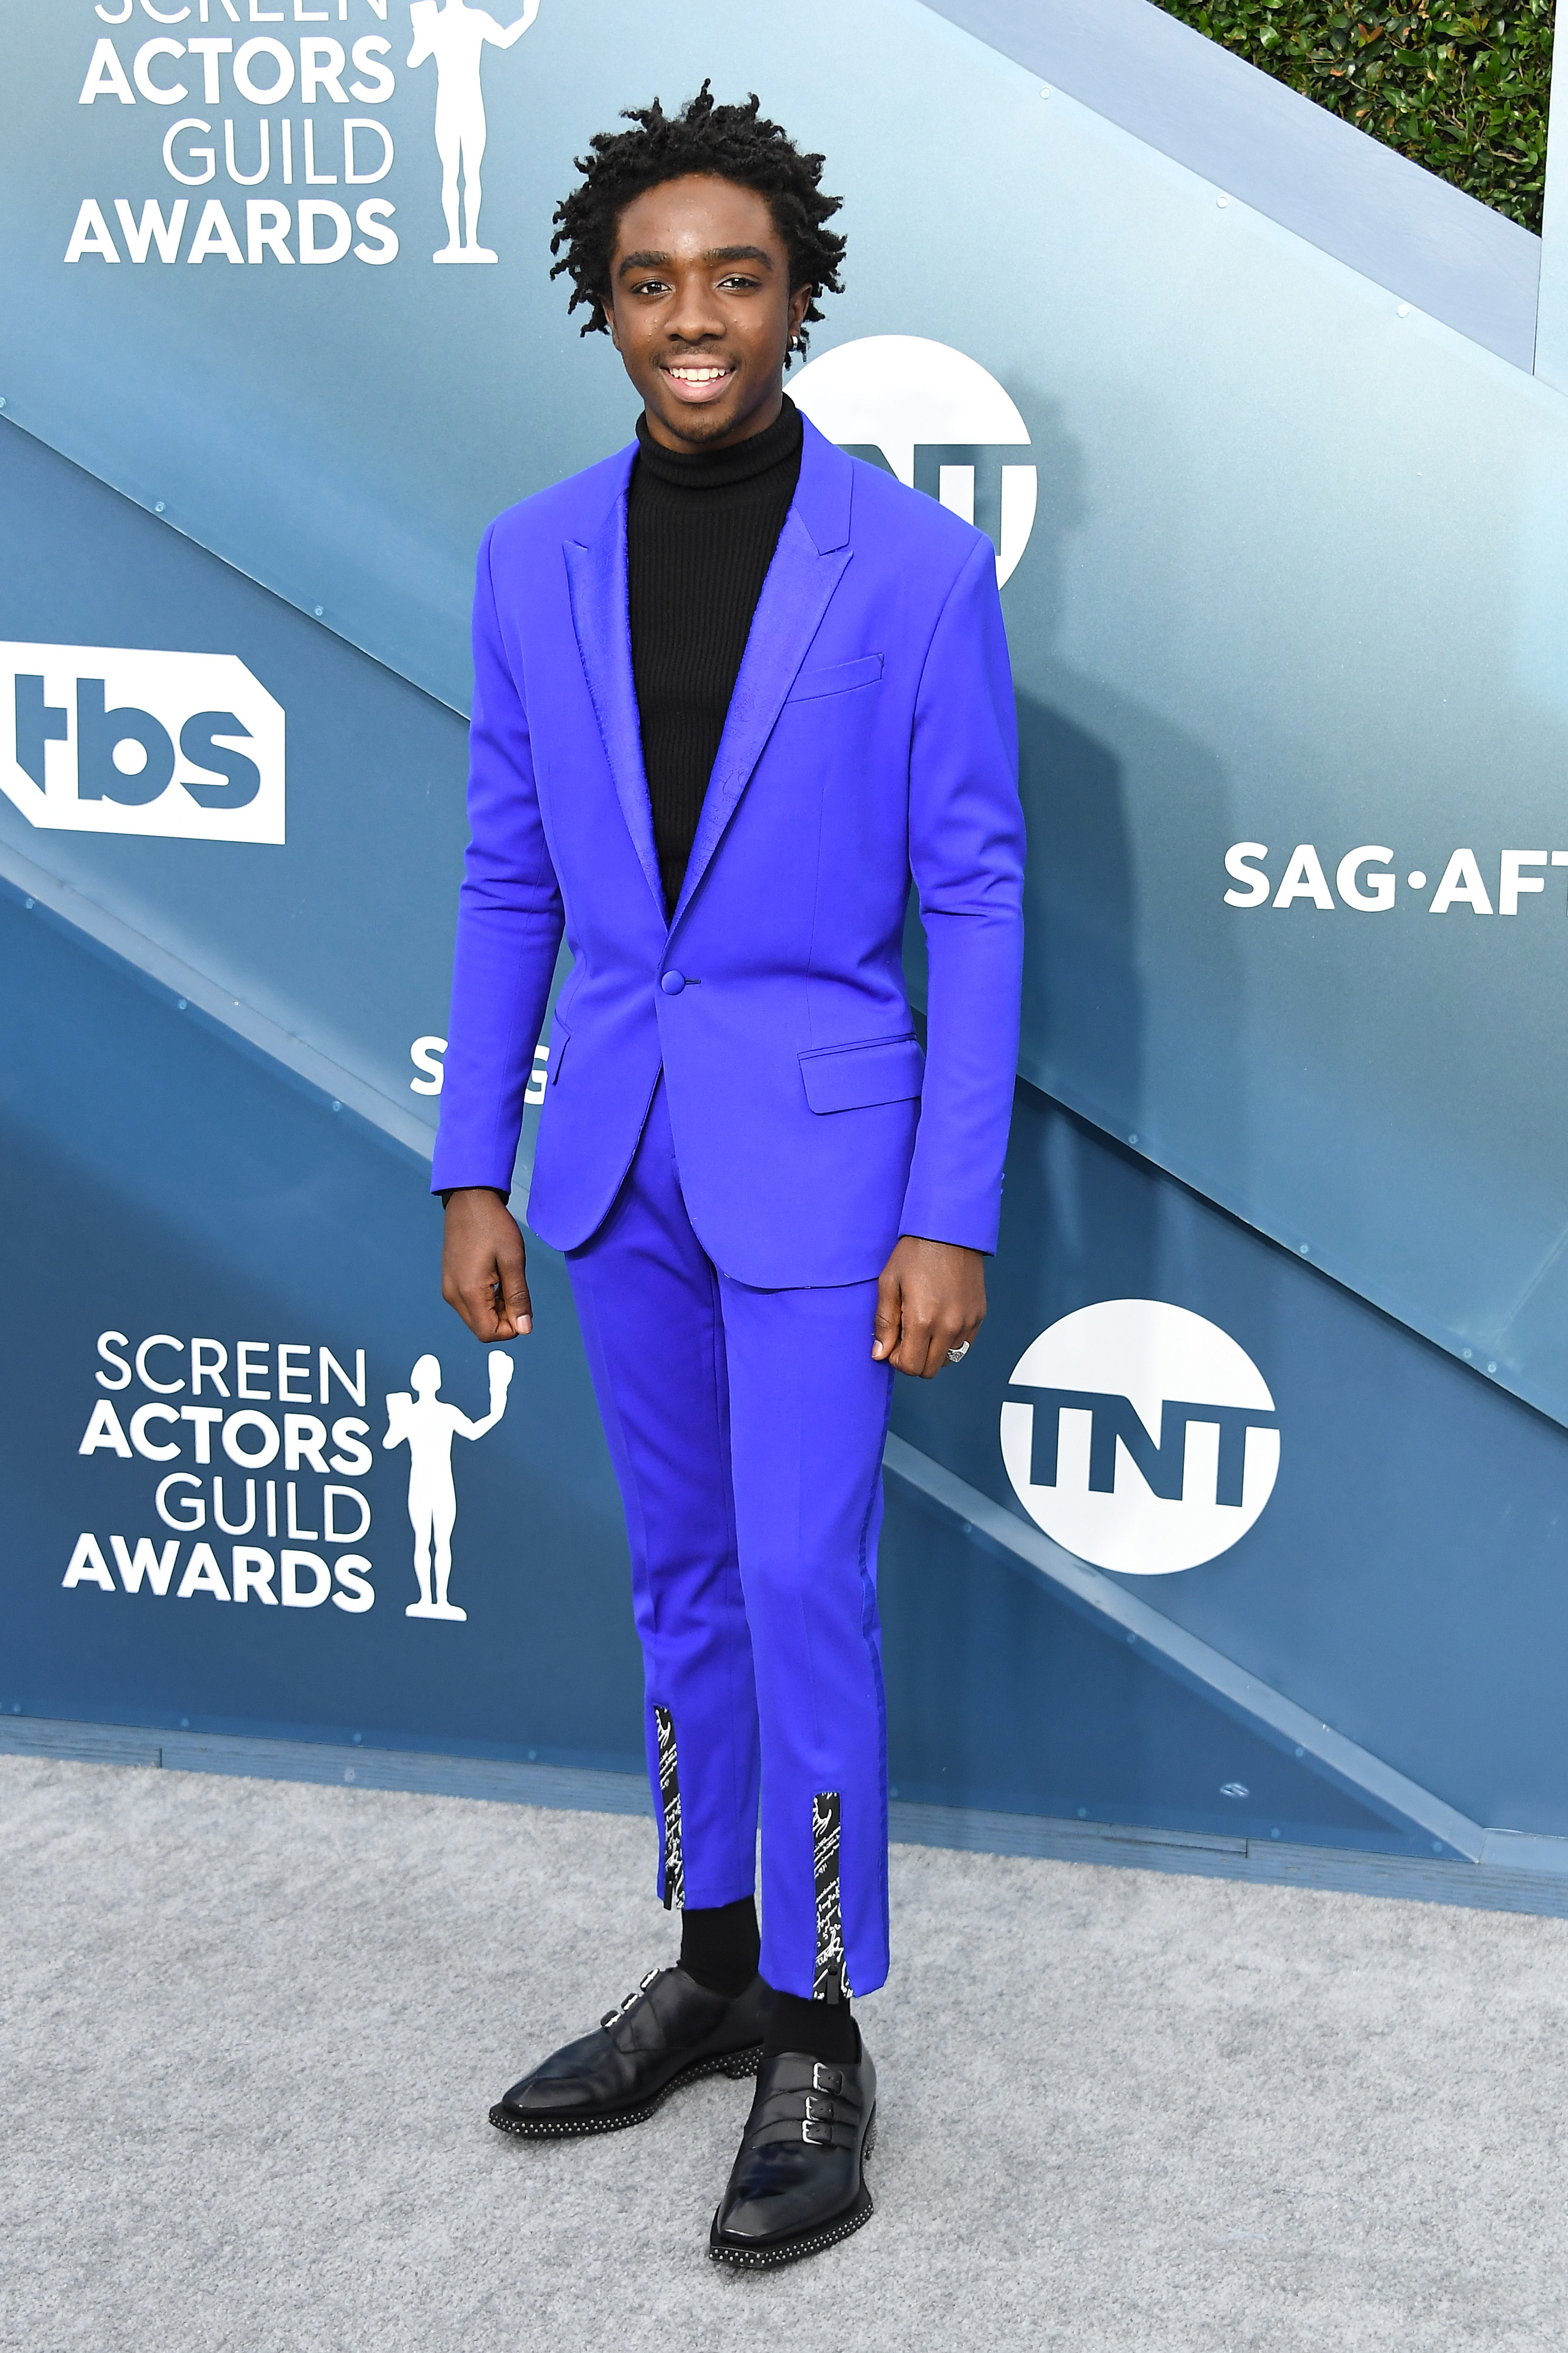 LOS ANGELES, CALIFORNIA - JANUARY 19: Caleb McLaughlin attends the 26th Annual Screen ActorsGuild Awards at The Shrine Auditorium on January 19, 2020 in Los Angeles, California. (Photo by Steve Granitz/WireImage)